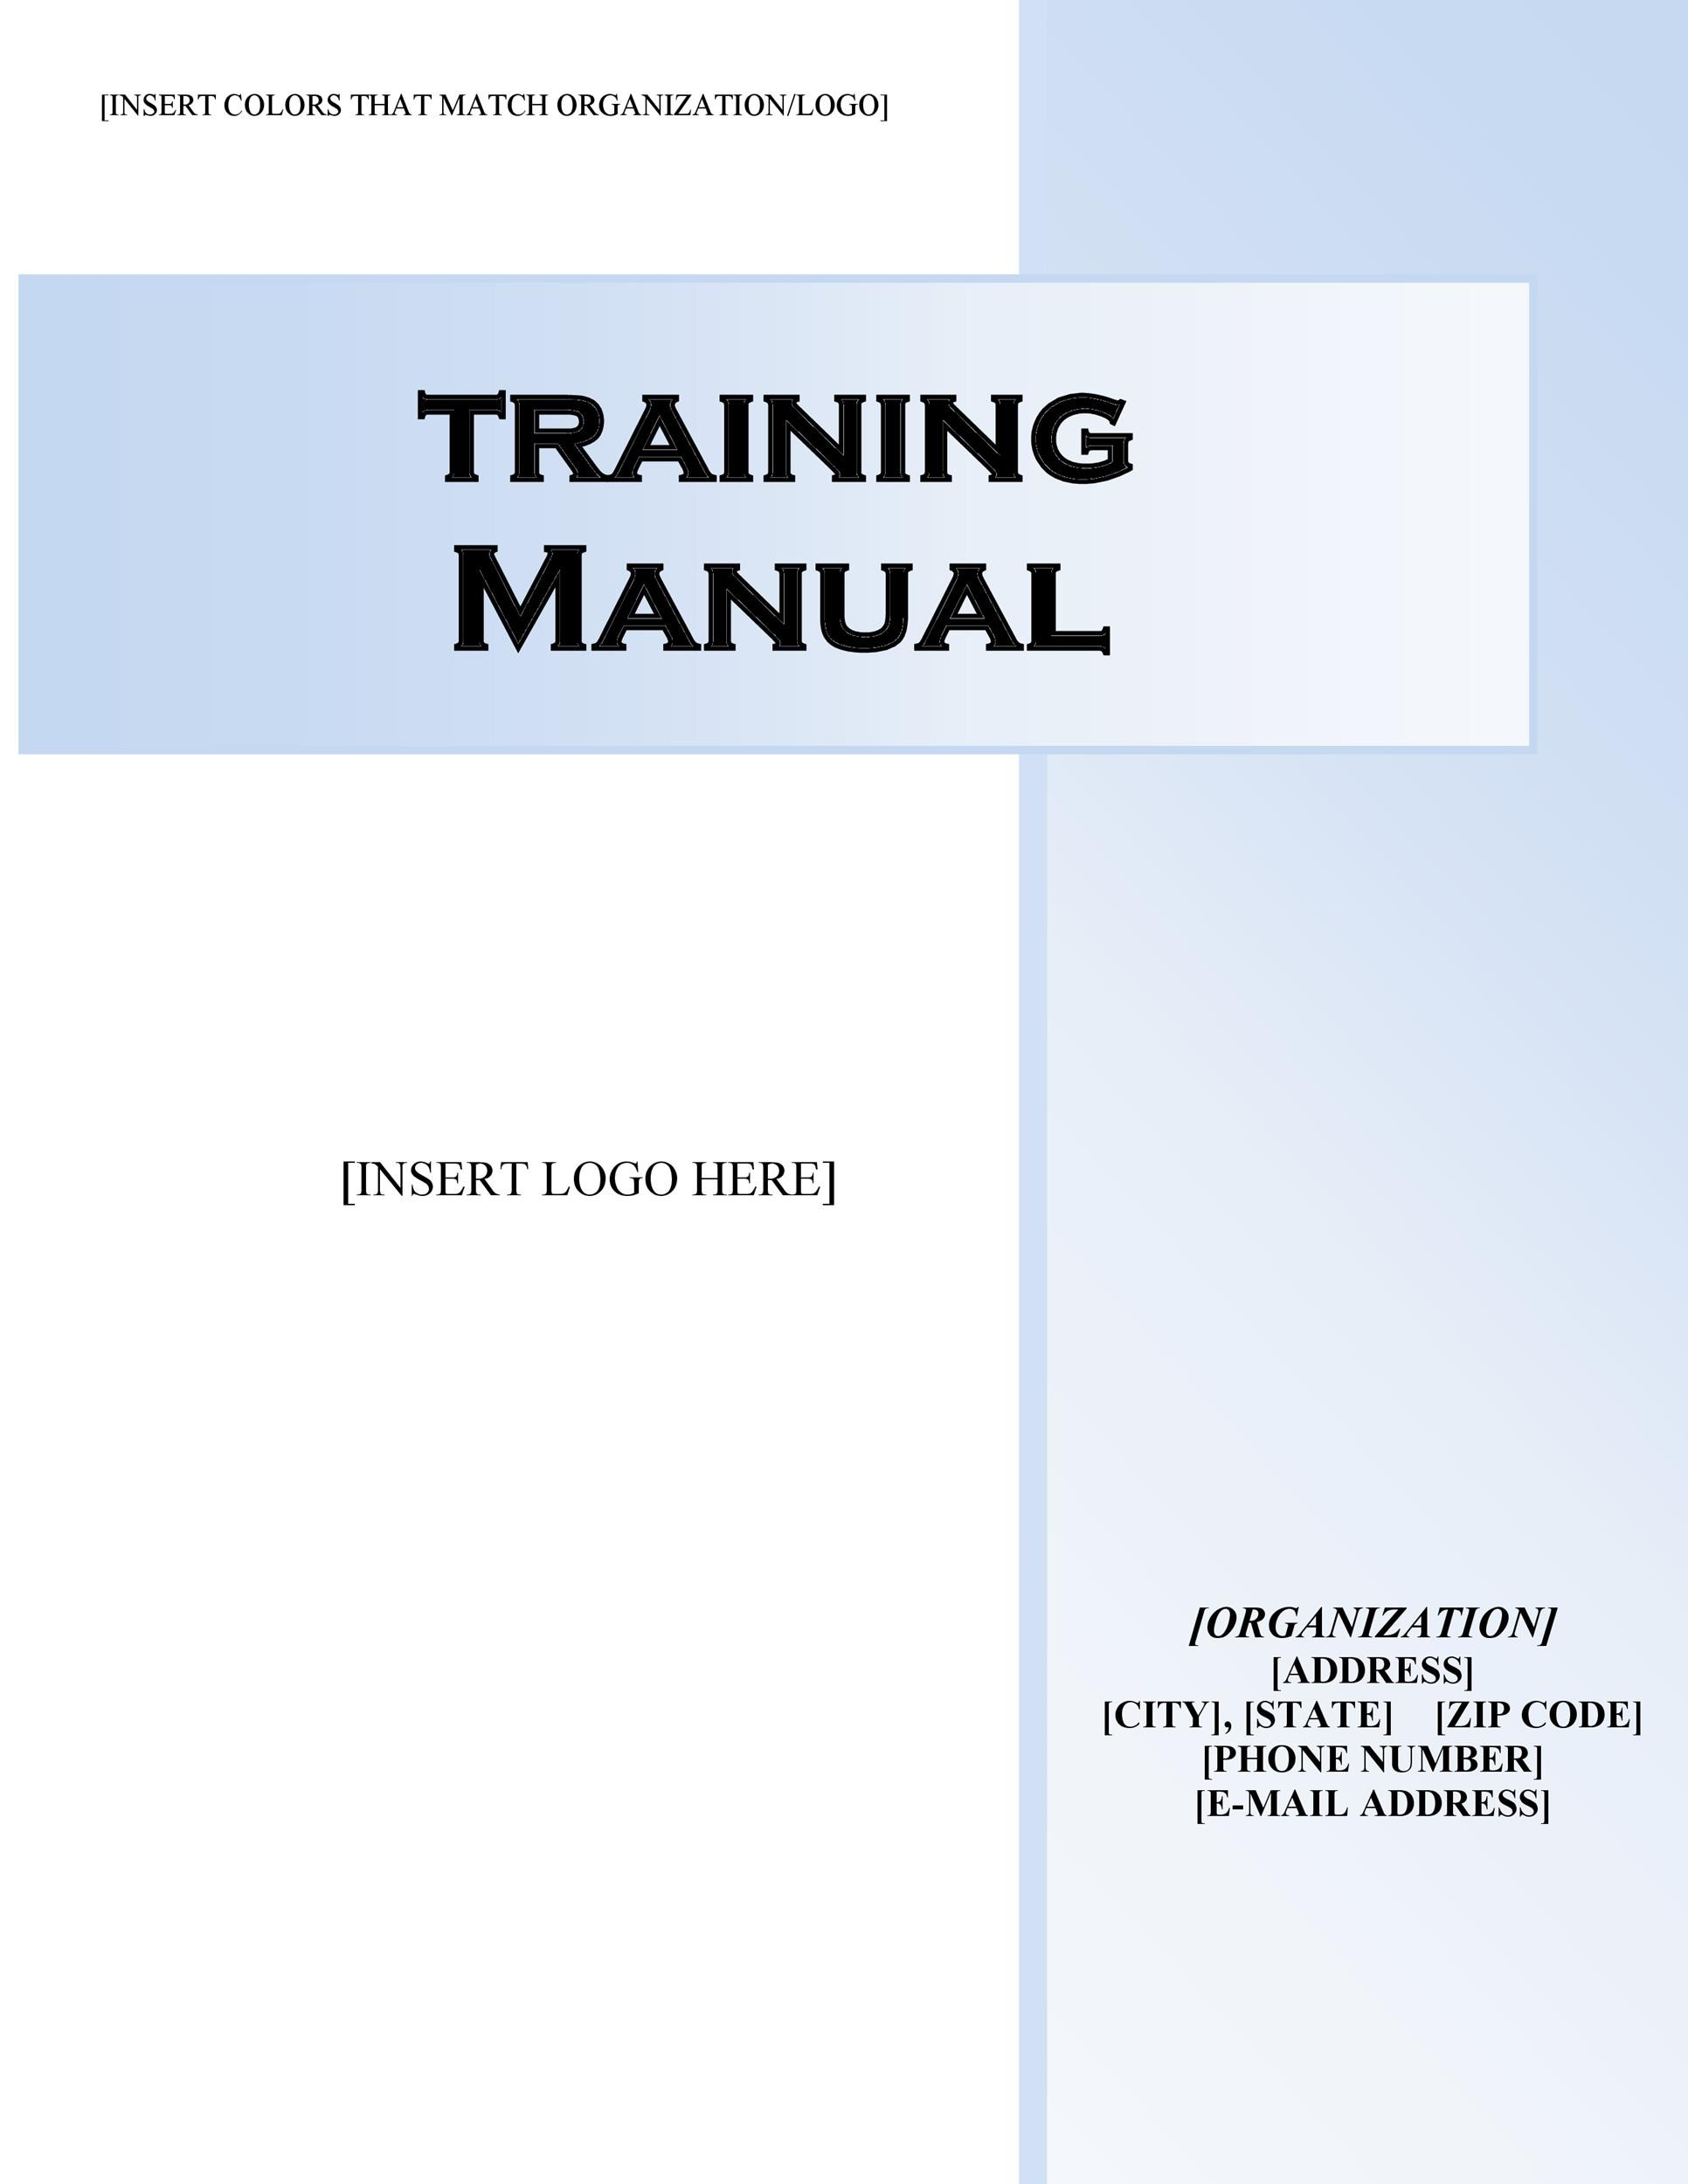 Training Manual 40 Free Templates Examples in MS Word